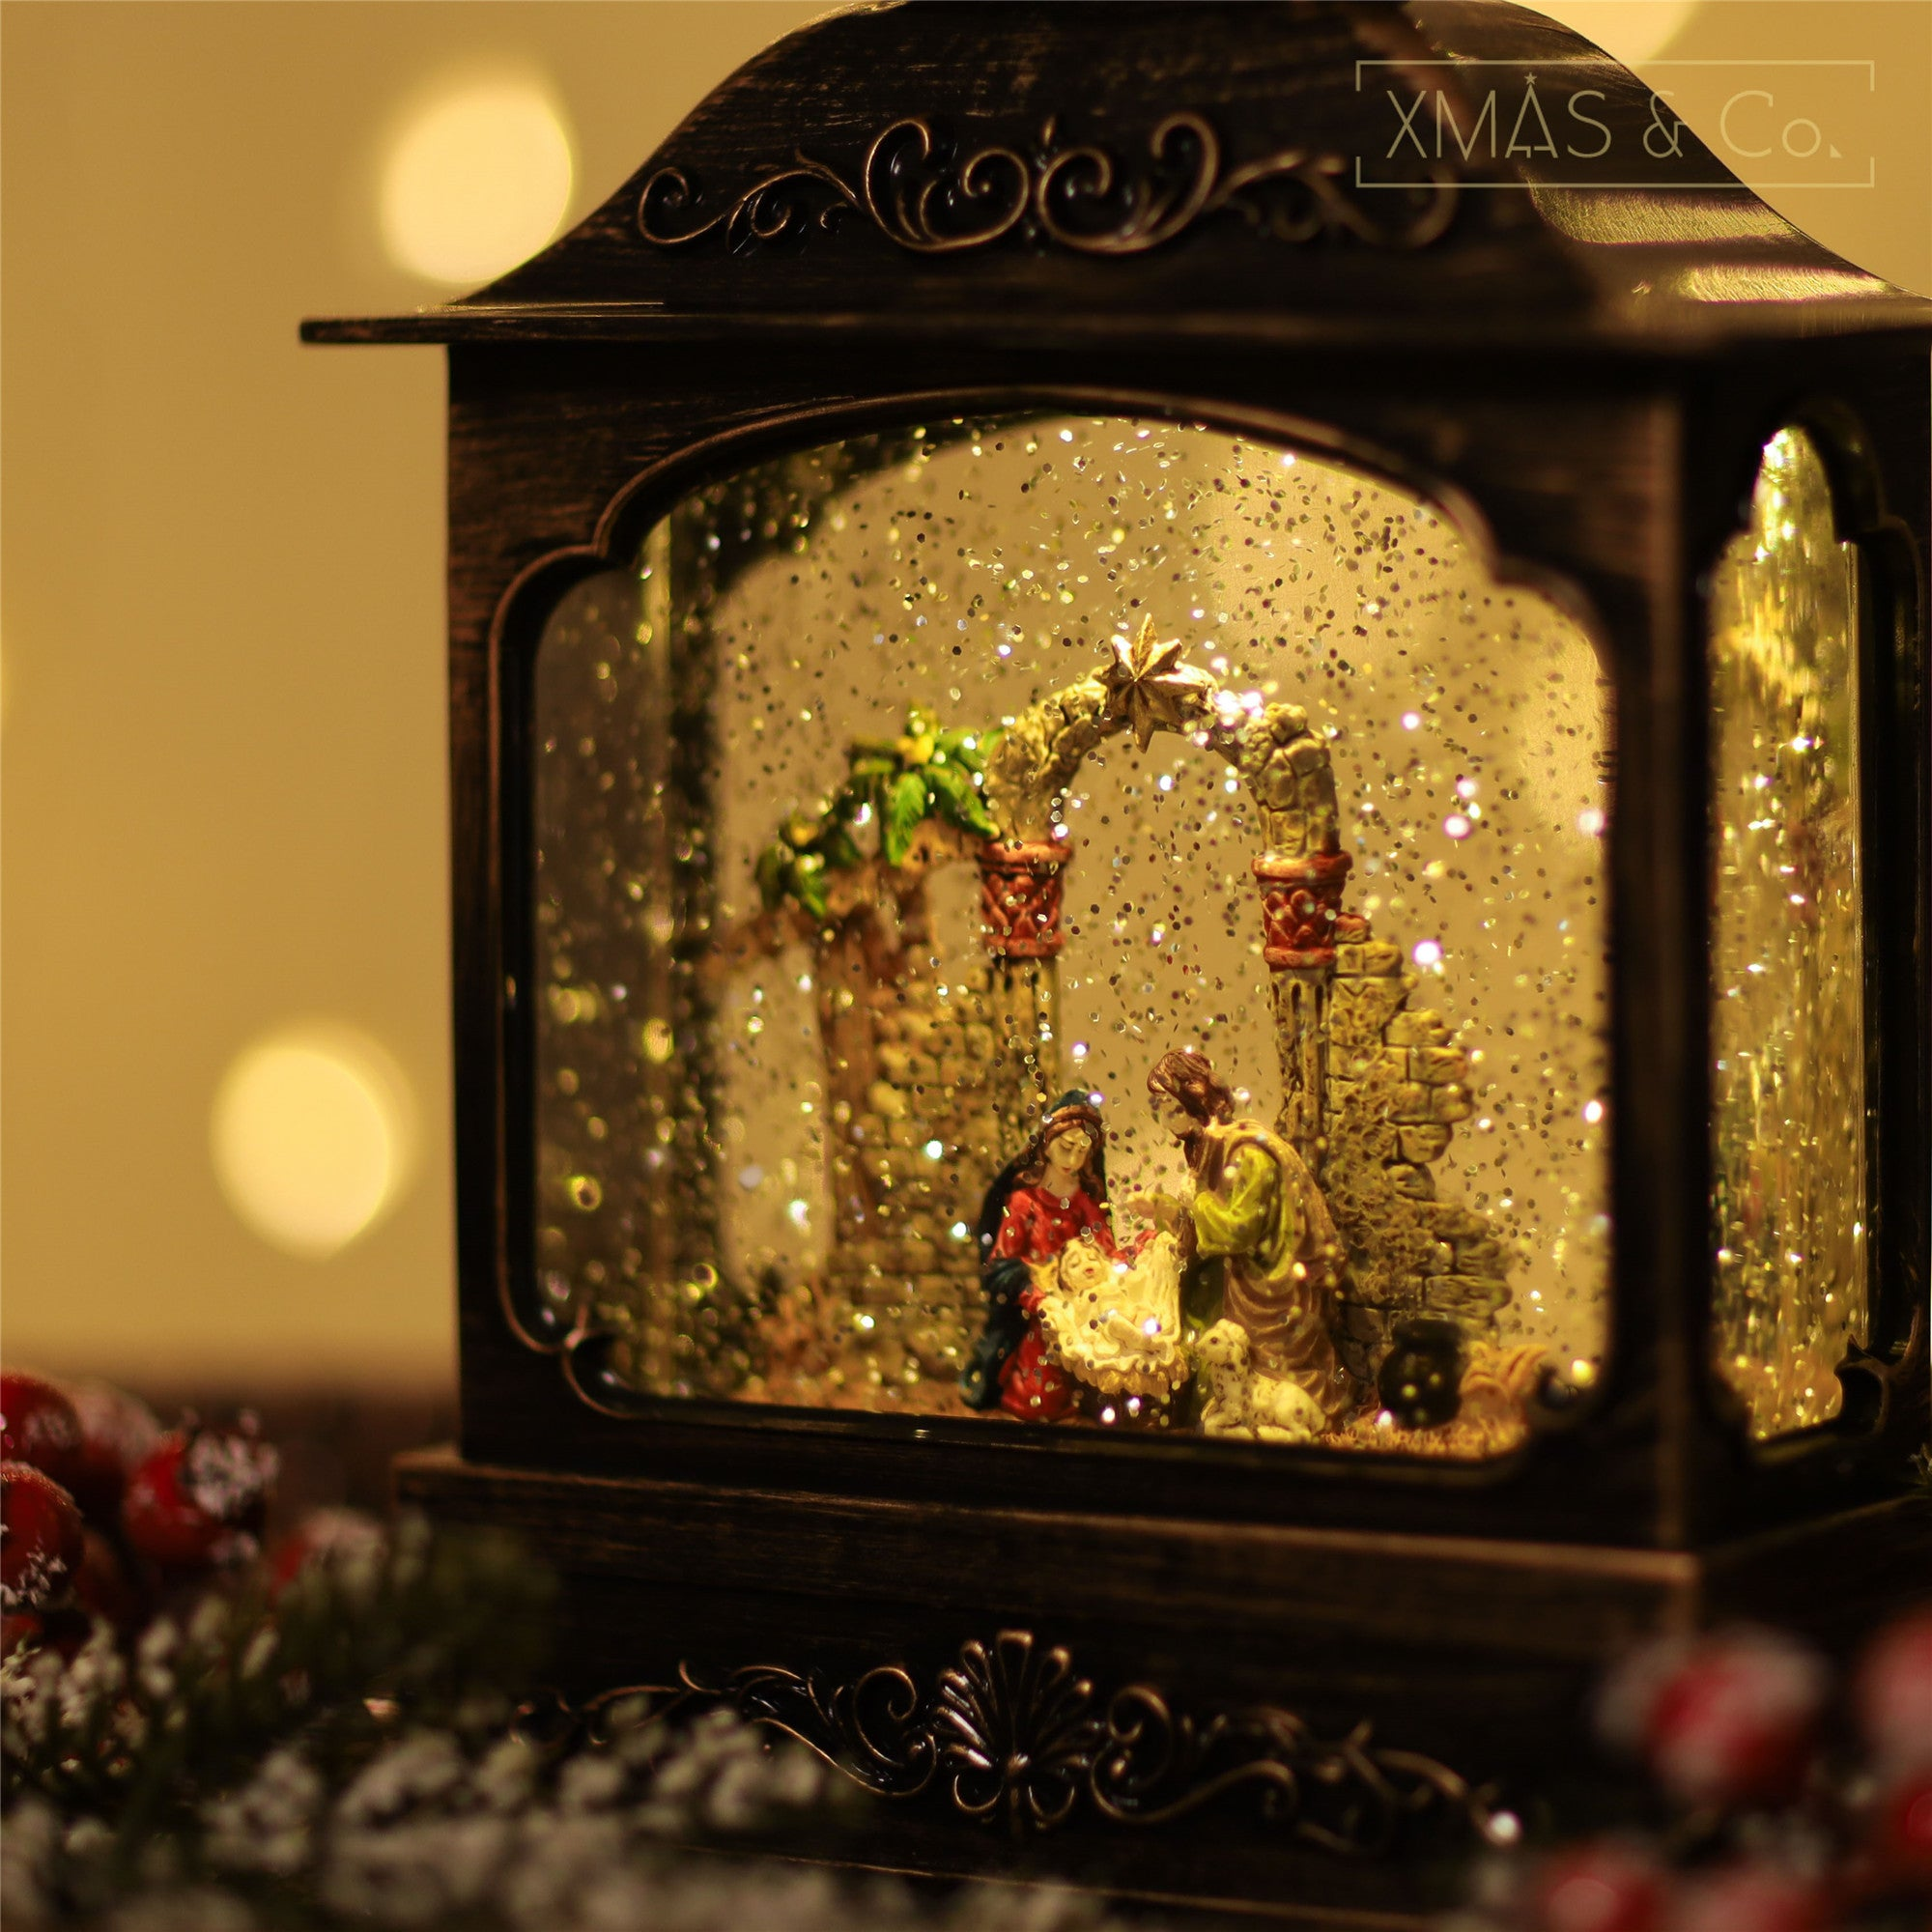 Snowing French Lantern / Nativity